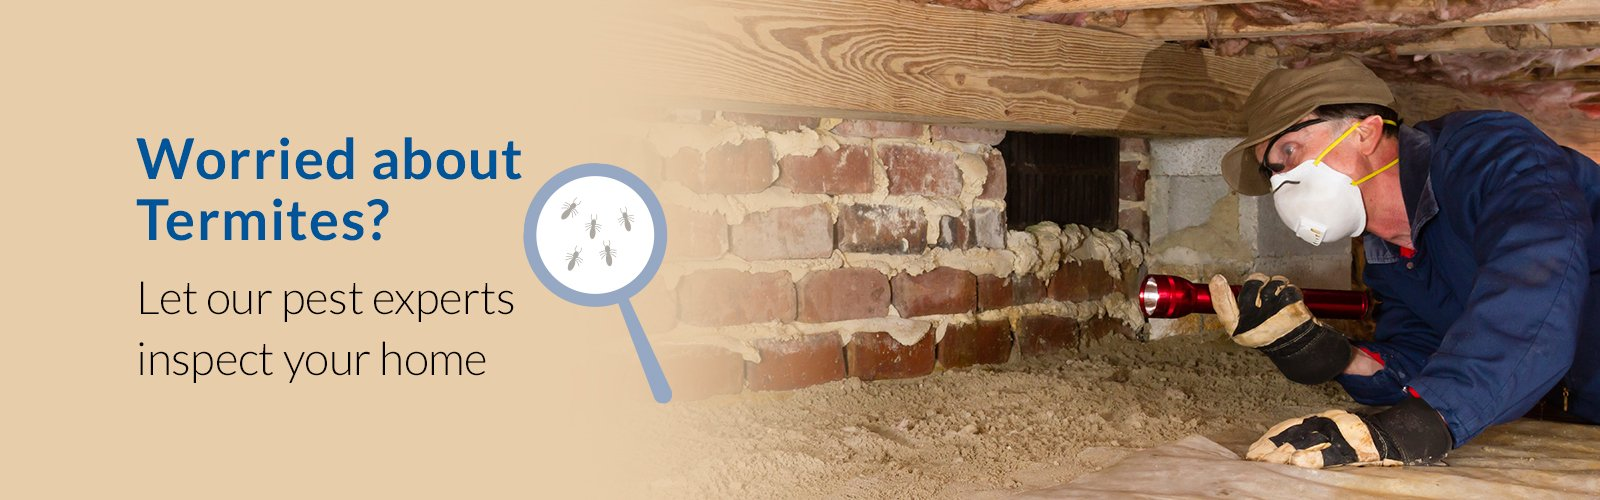 worried about termites? let our pest experts inspect your home